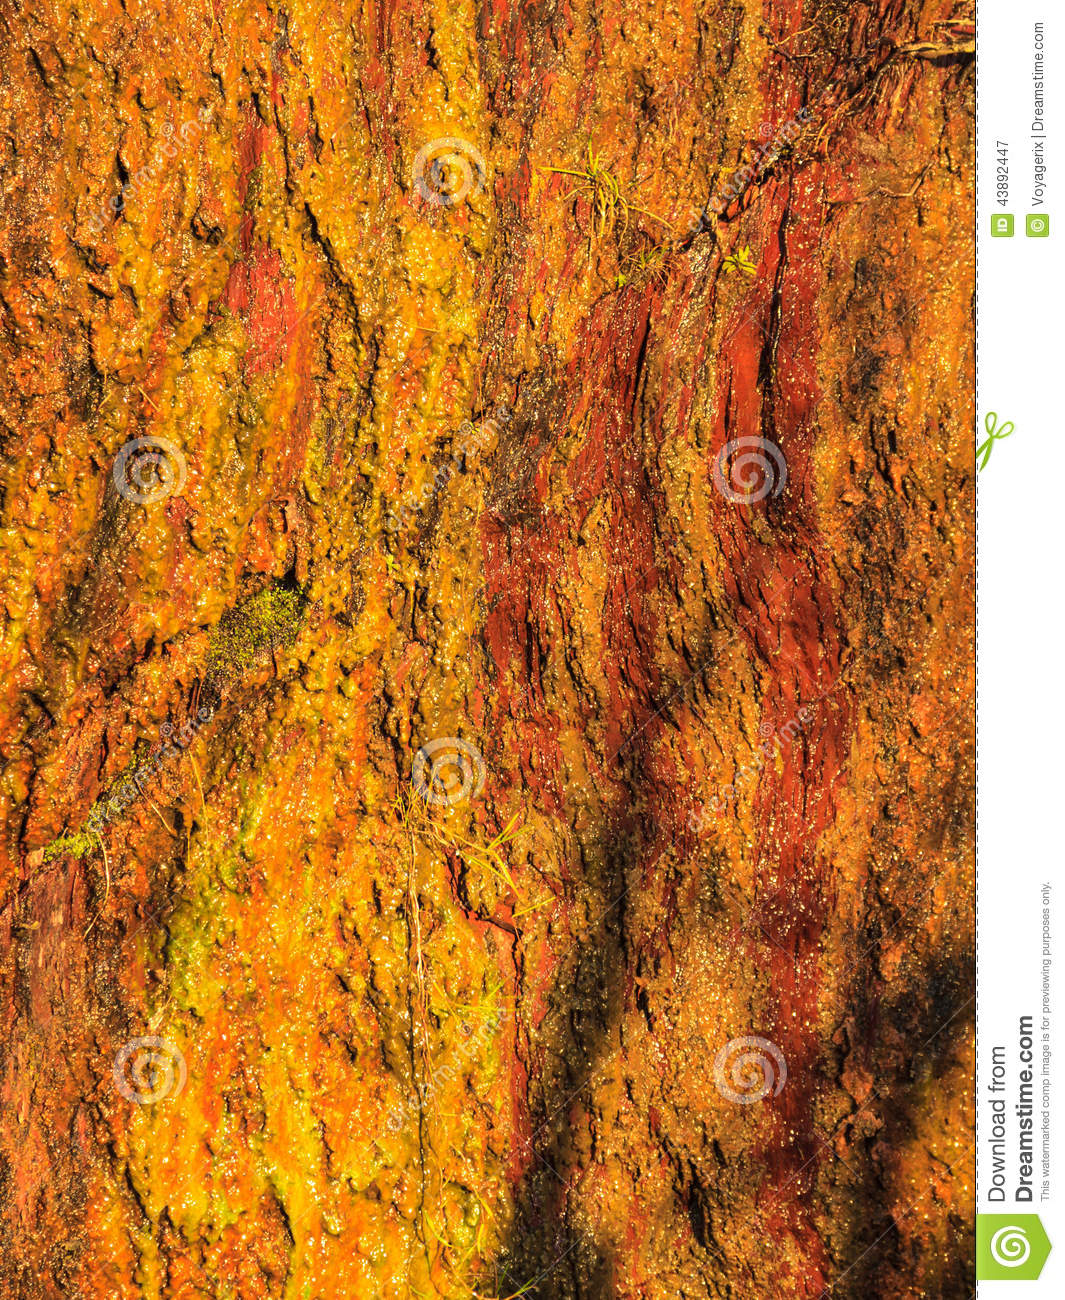 Golden Nugget Surface Texture Close Up Stock Photo | CartoonDealer.com ...